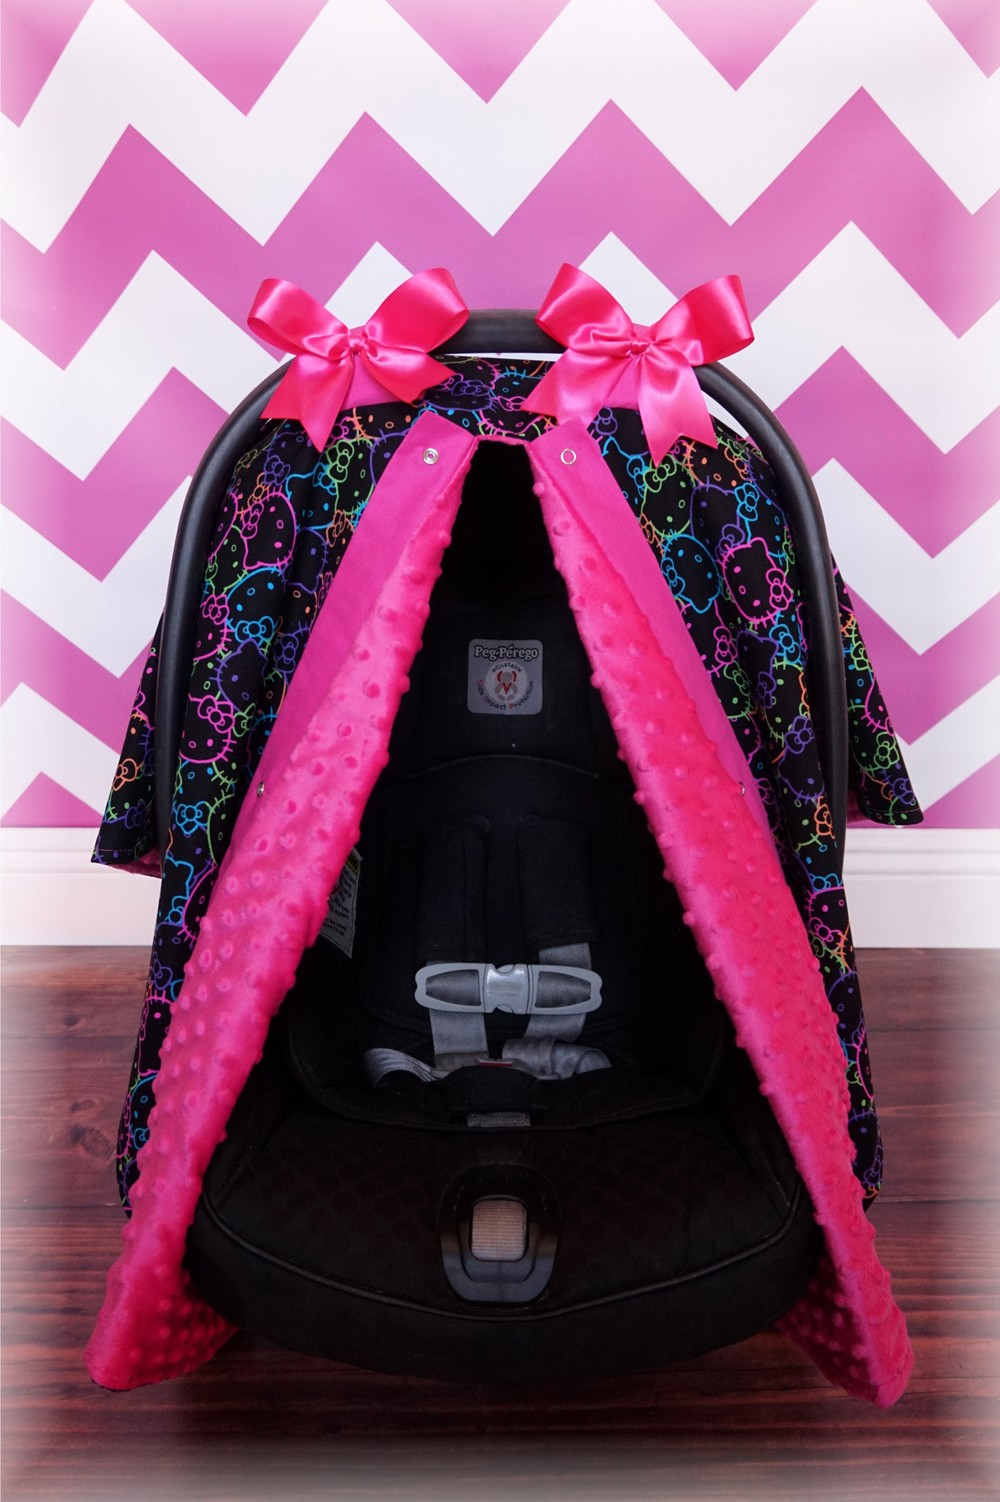 Black Neon Hello Kitty u0026 Hot Pink Minky Canopy : minnie mouse car seat canopy - memphite.com